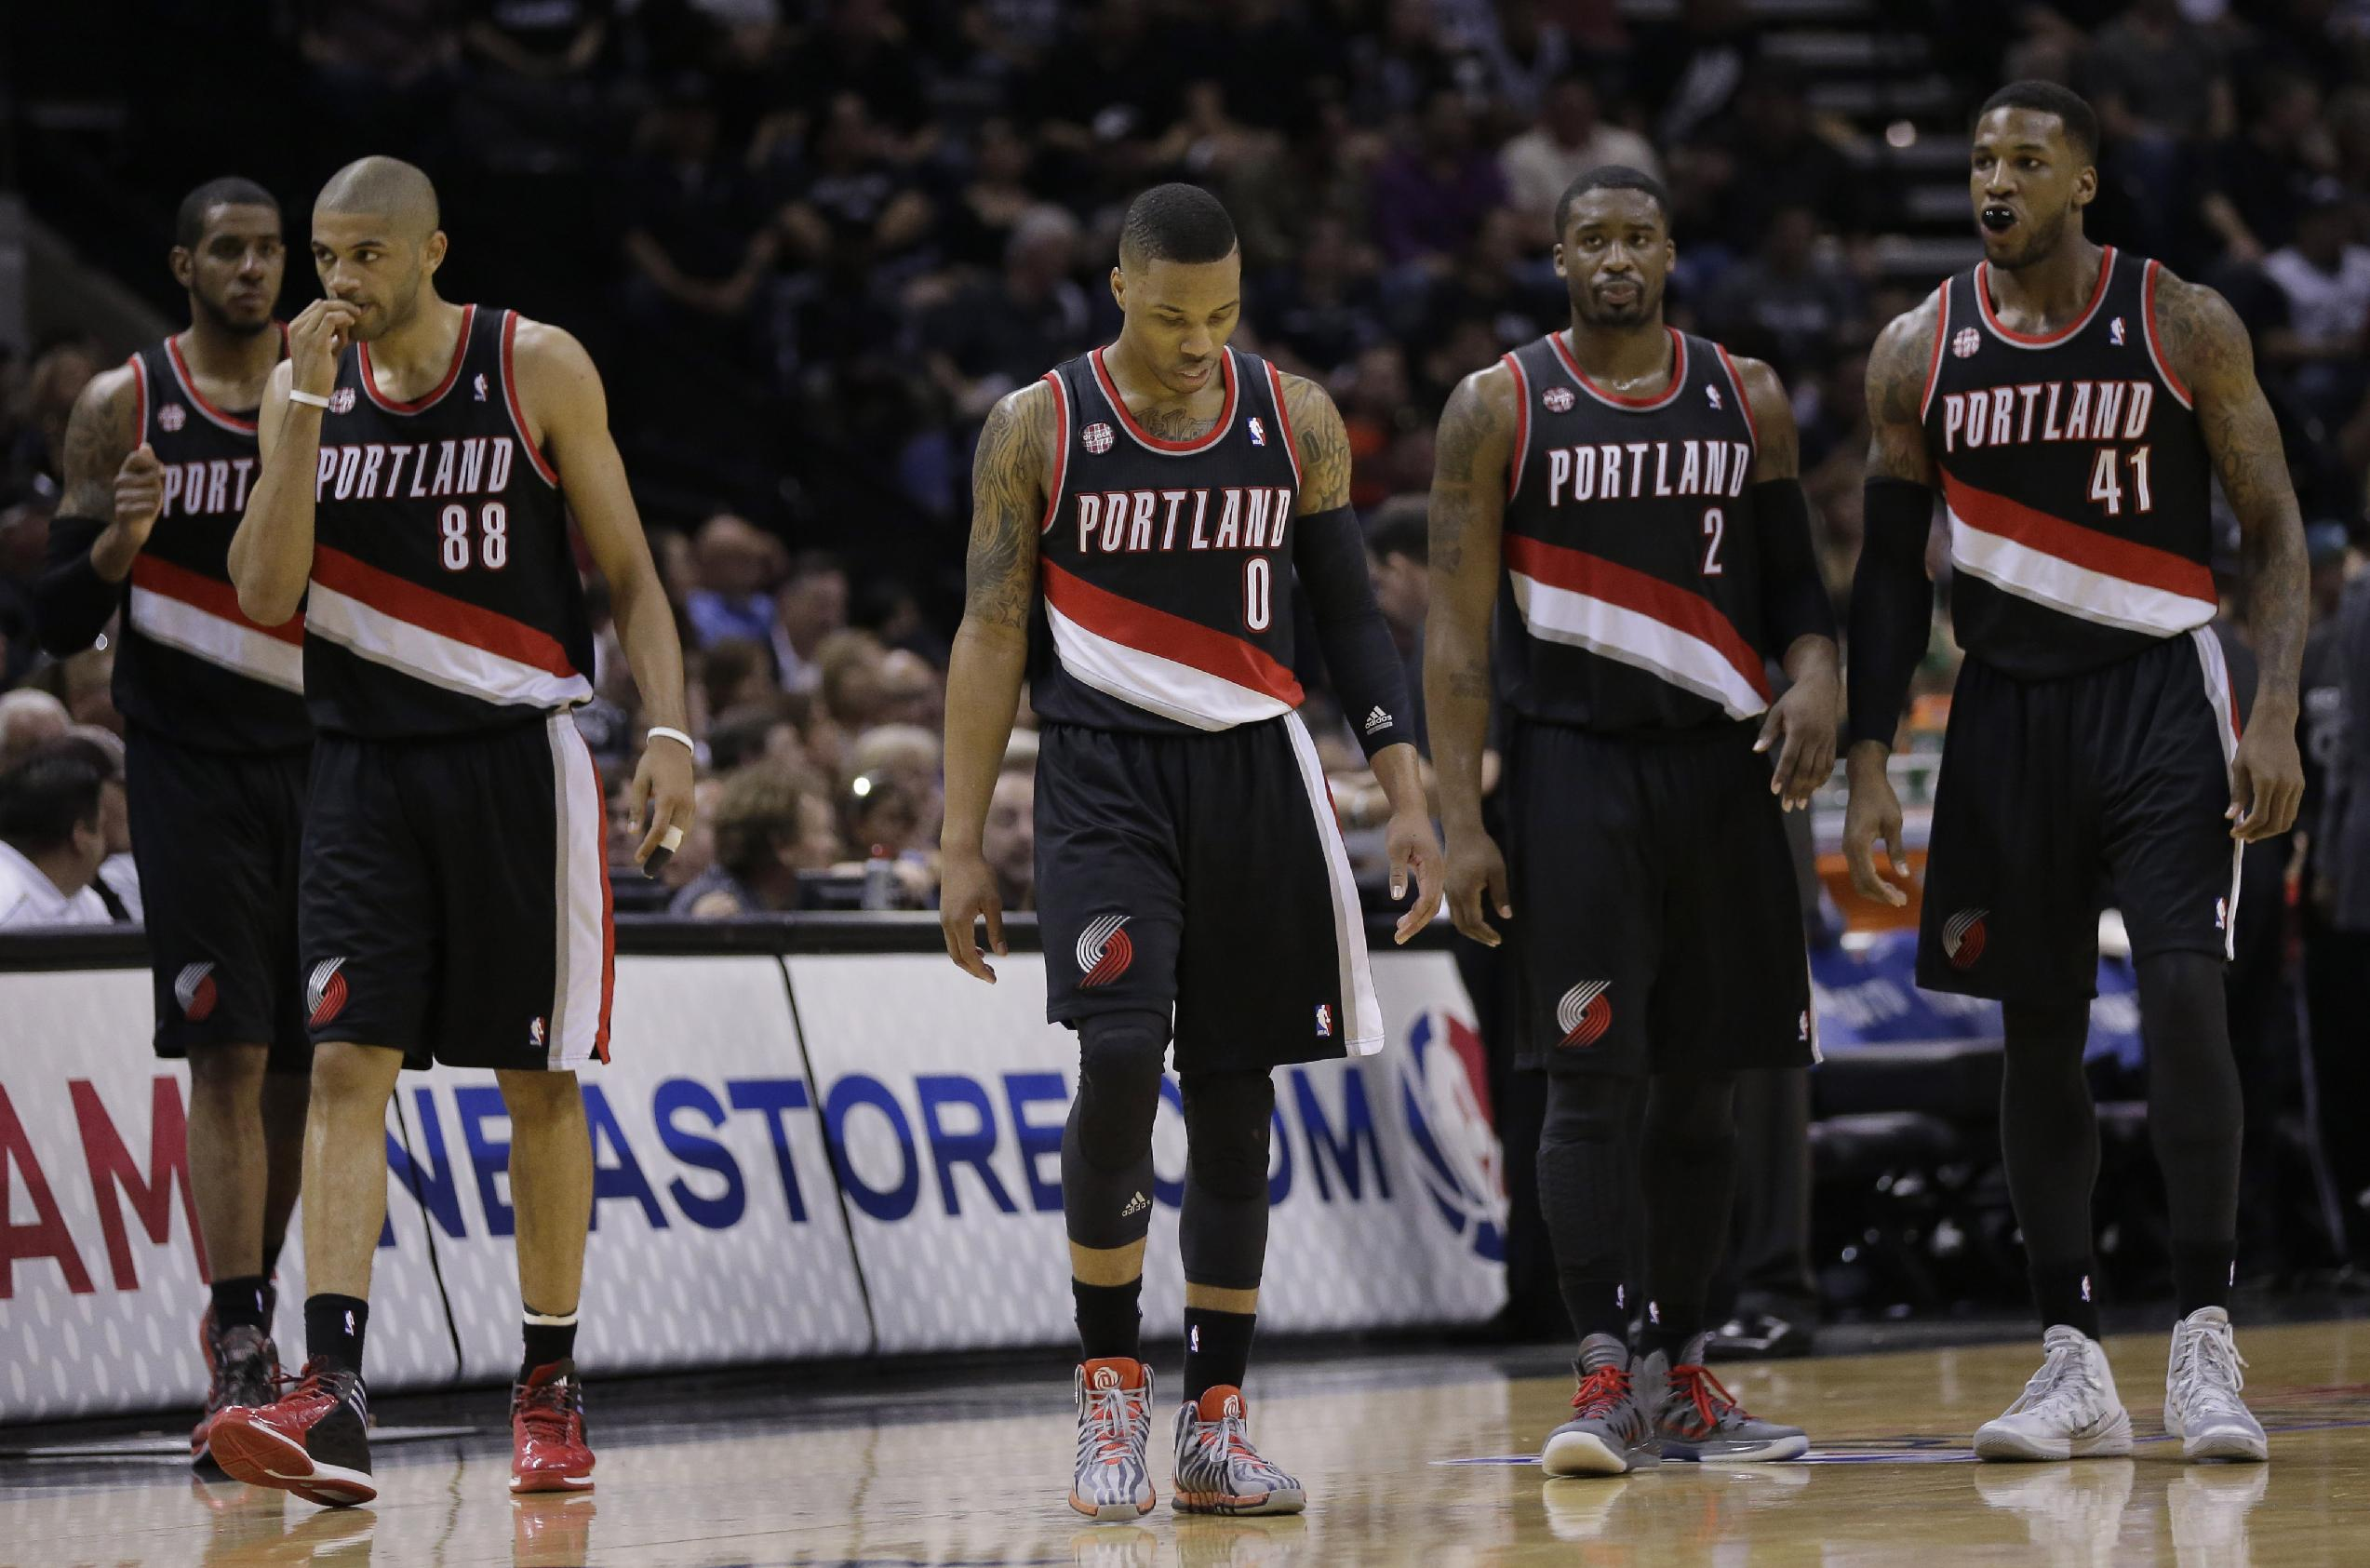 Portland Trail Blazers' LaMarcus Aldridge, left, Nicolas Batum (88), Damian Lillard (0), Wesley Matthews (2), and Thomas Robinson (41) walk on to the court following a time out during the first half of Game 2 of a Western Conference semifinal NBA basketball playoff series against the San Antonio Spurs, Thursday, May 8, 2014, in San Antonio